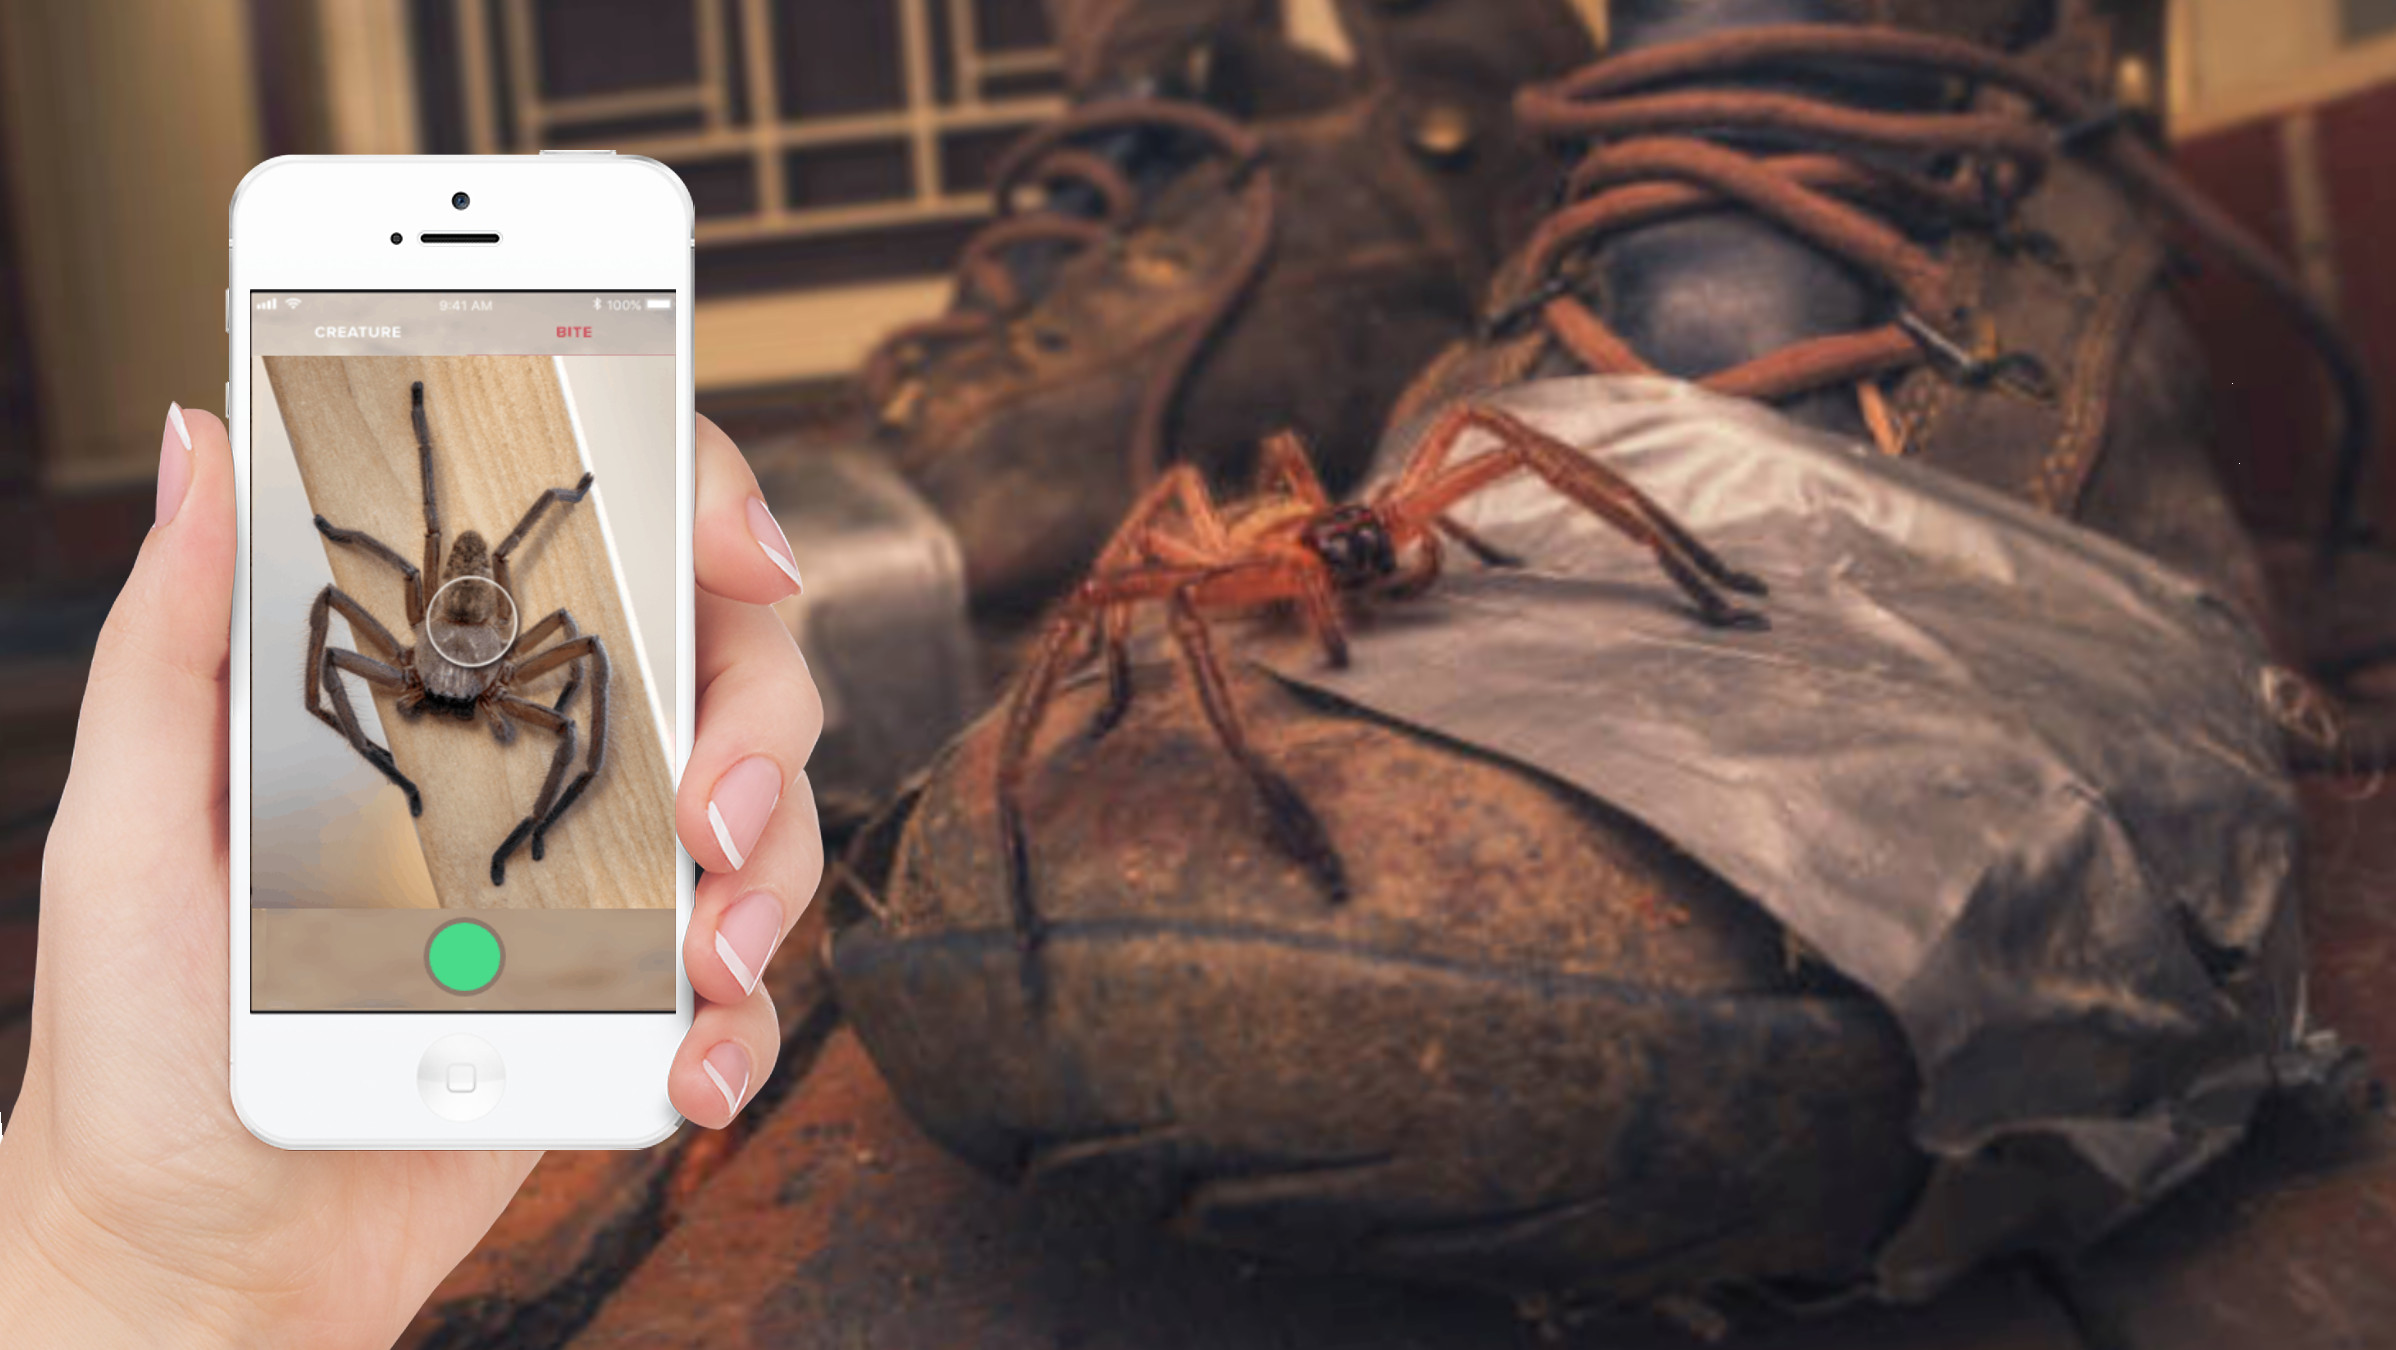 Critterpedia app and spider on boot